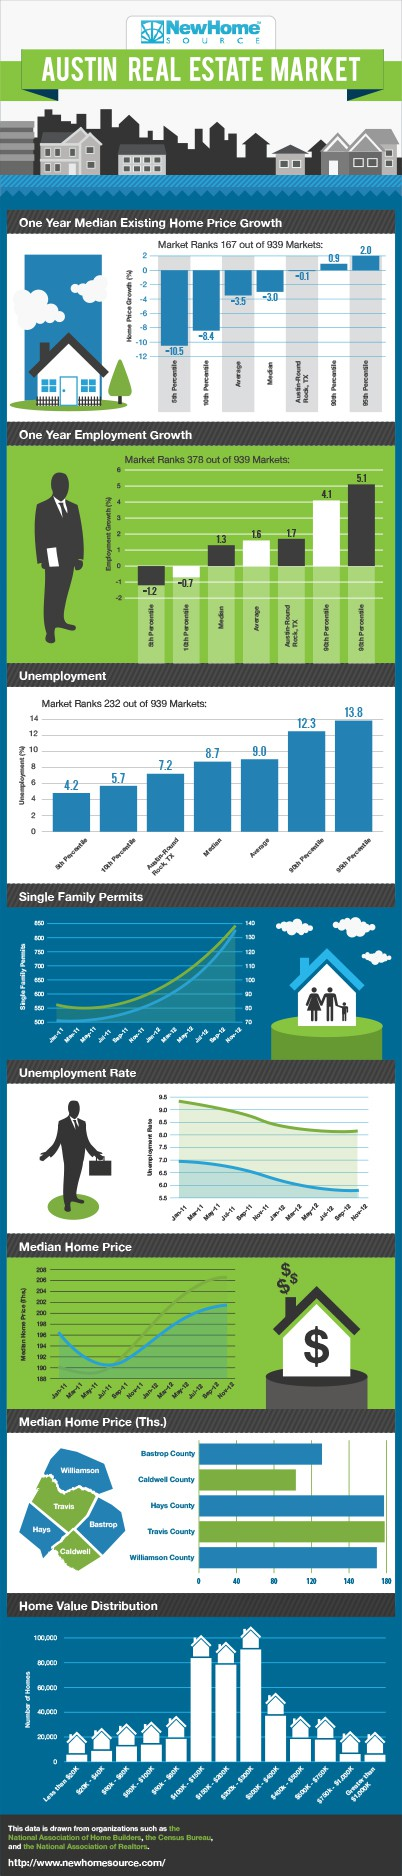 New Home Source Seeks Infographic